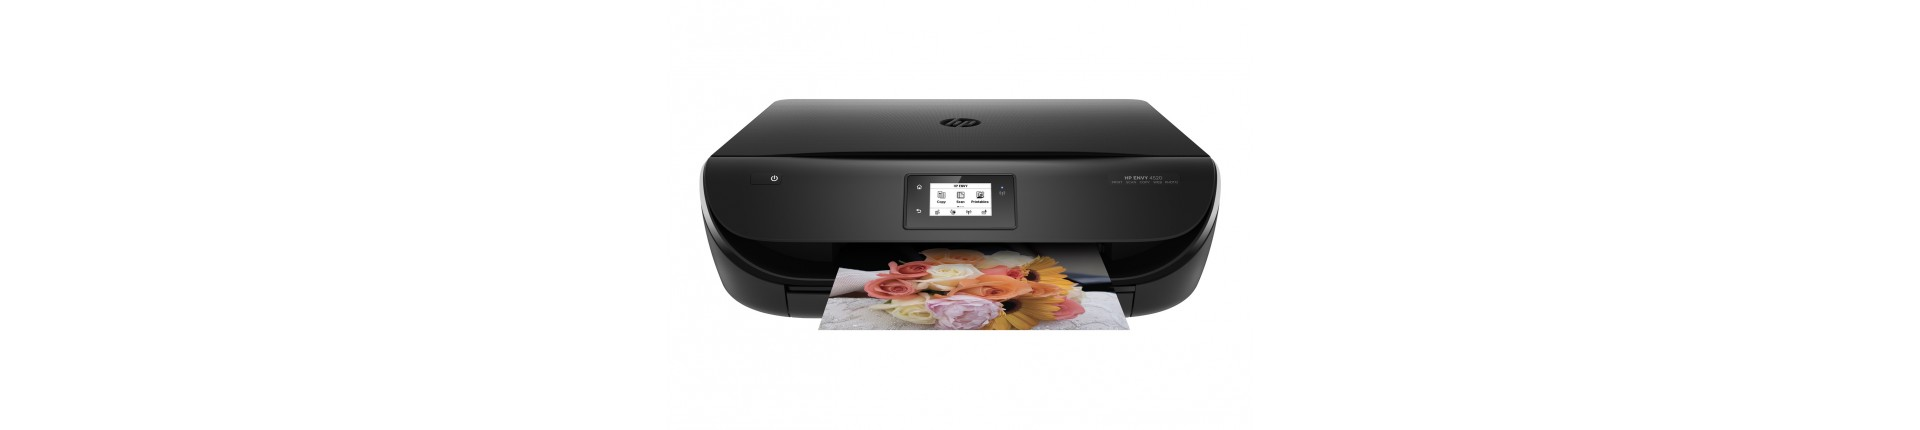 Cartouche HP Envy 4520 e-All-in-One